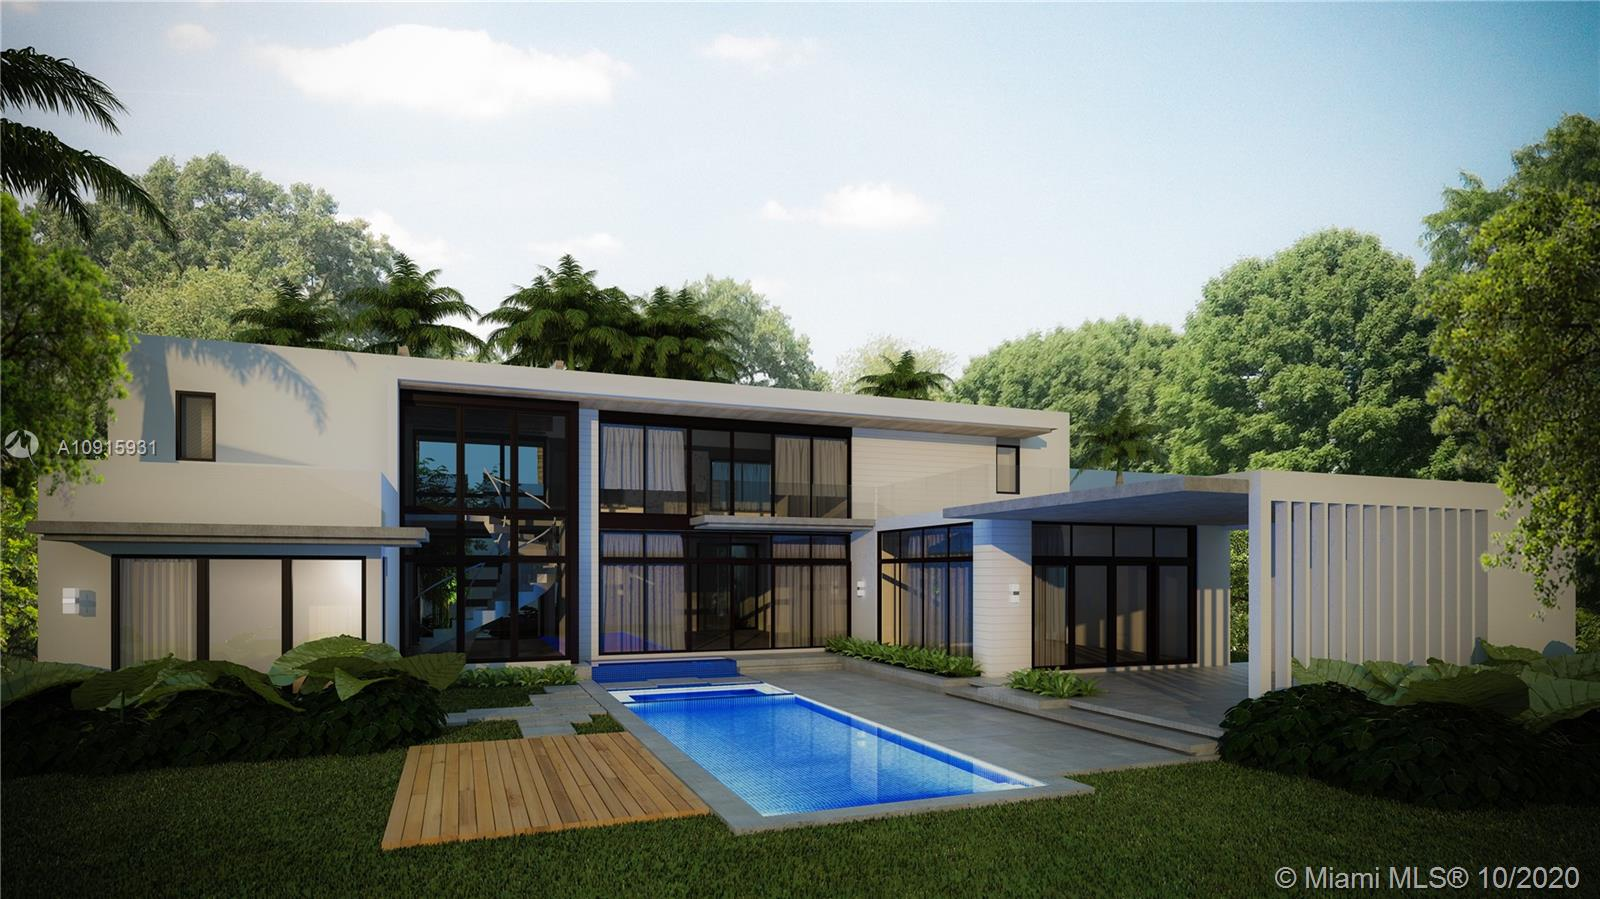 This brand new custom construction in Coral Gables is a modern dream:clean lines,vast windows,neutral palette, and a simple-yet complex–structure.Ideally located in South Grove.Located on a quiet street a mere 3 mins to the center of the town,this 6 be/6.5ba home offers approx 5,406SF (adj) on a 16,100 SF lot. This home is a collaboration of the industry's finest:Guimar Urbina Interiors, Nelson de Leon of Locus Architecture & CH Construction.The property will come with top of the Line European finishes such as Lualdi,Laufen,ArcLine & SubZero/Wolf.Flooring will be porcelain tile,wood,Limestone as well as Terrazo.The garden will offer a summer kitchen w/ Gas Grill & Outdoor refrigerator drawer by Subzero & a(heated) salt-water pool w/ Jacuzzi & LED lights. This is a rare 'custom' level home!